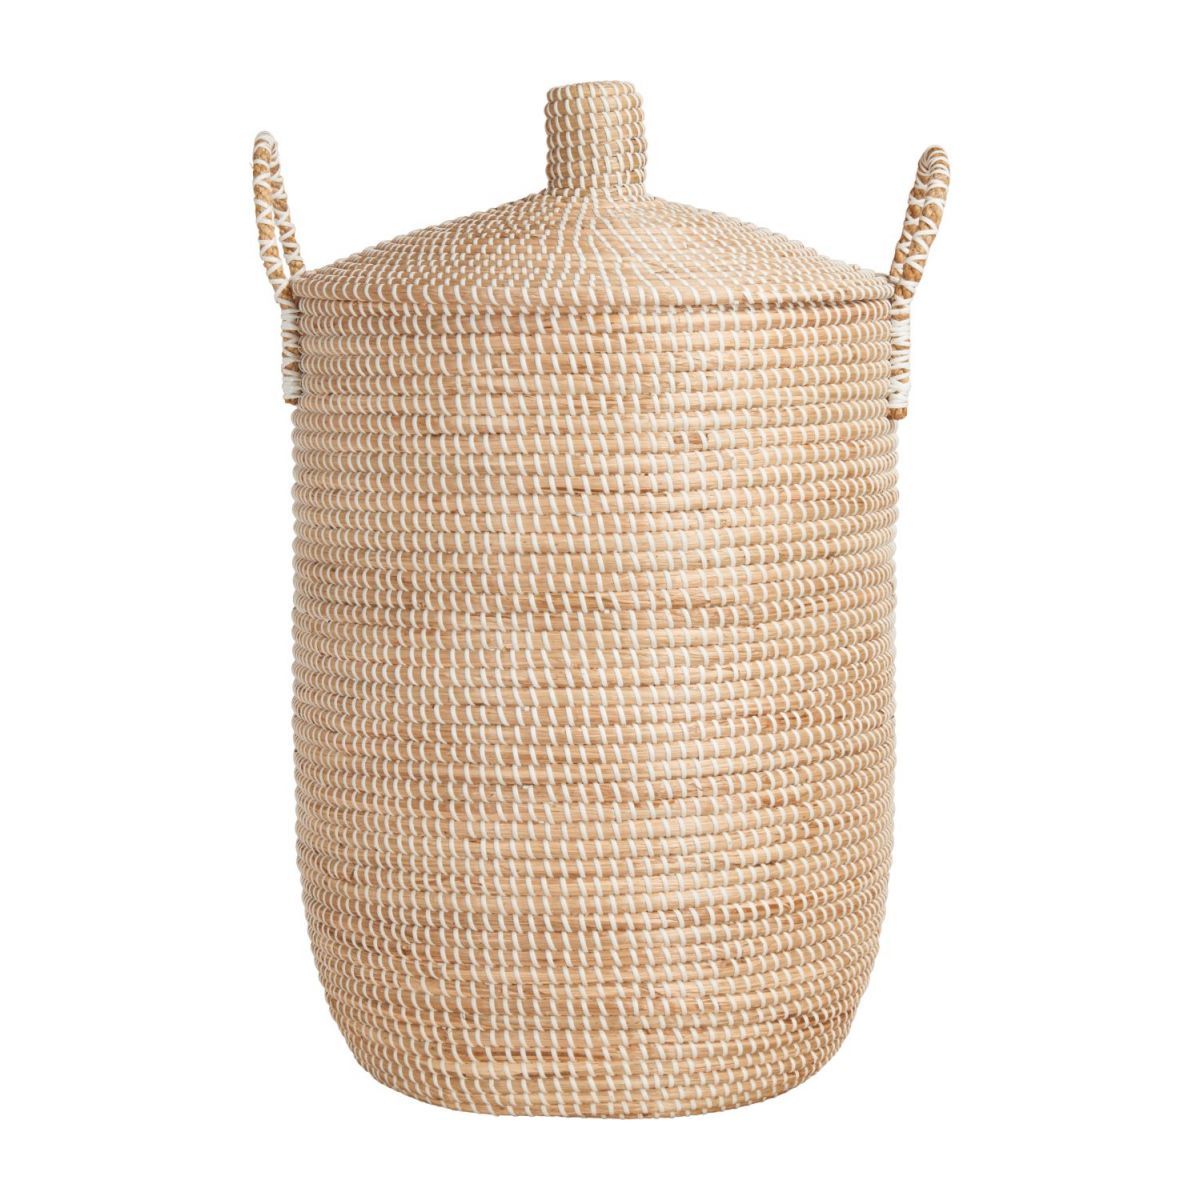 Basket 70cm with cover made of seagrass n°3